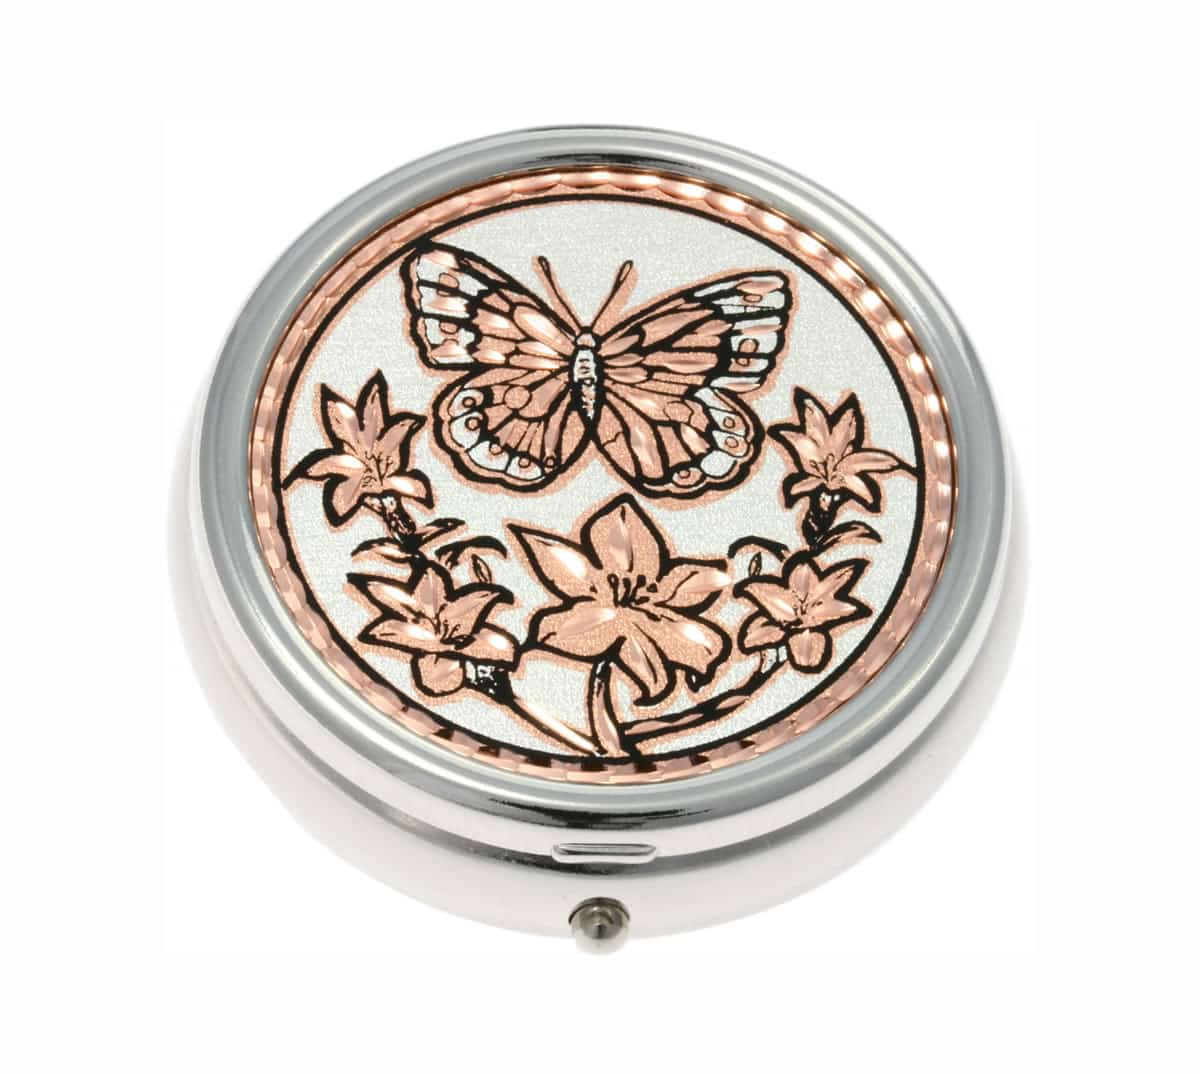 Handmade Copper Butterfly Artwork Decorated Silver Color Pill Boxes